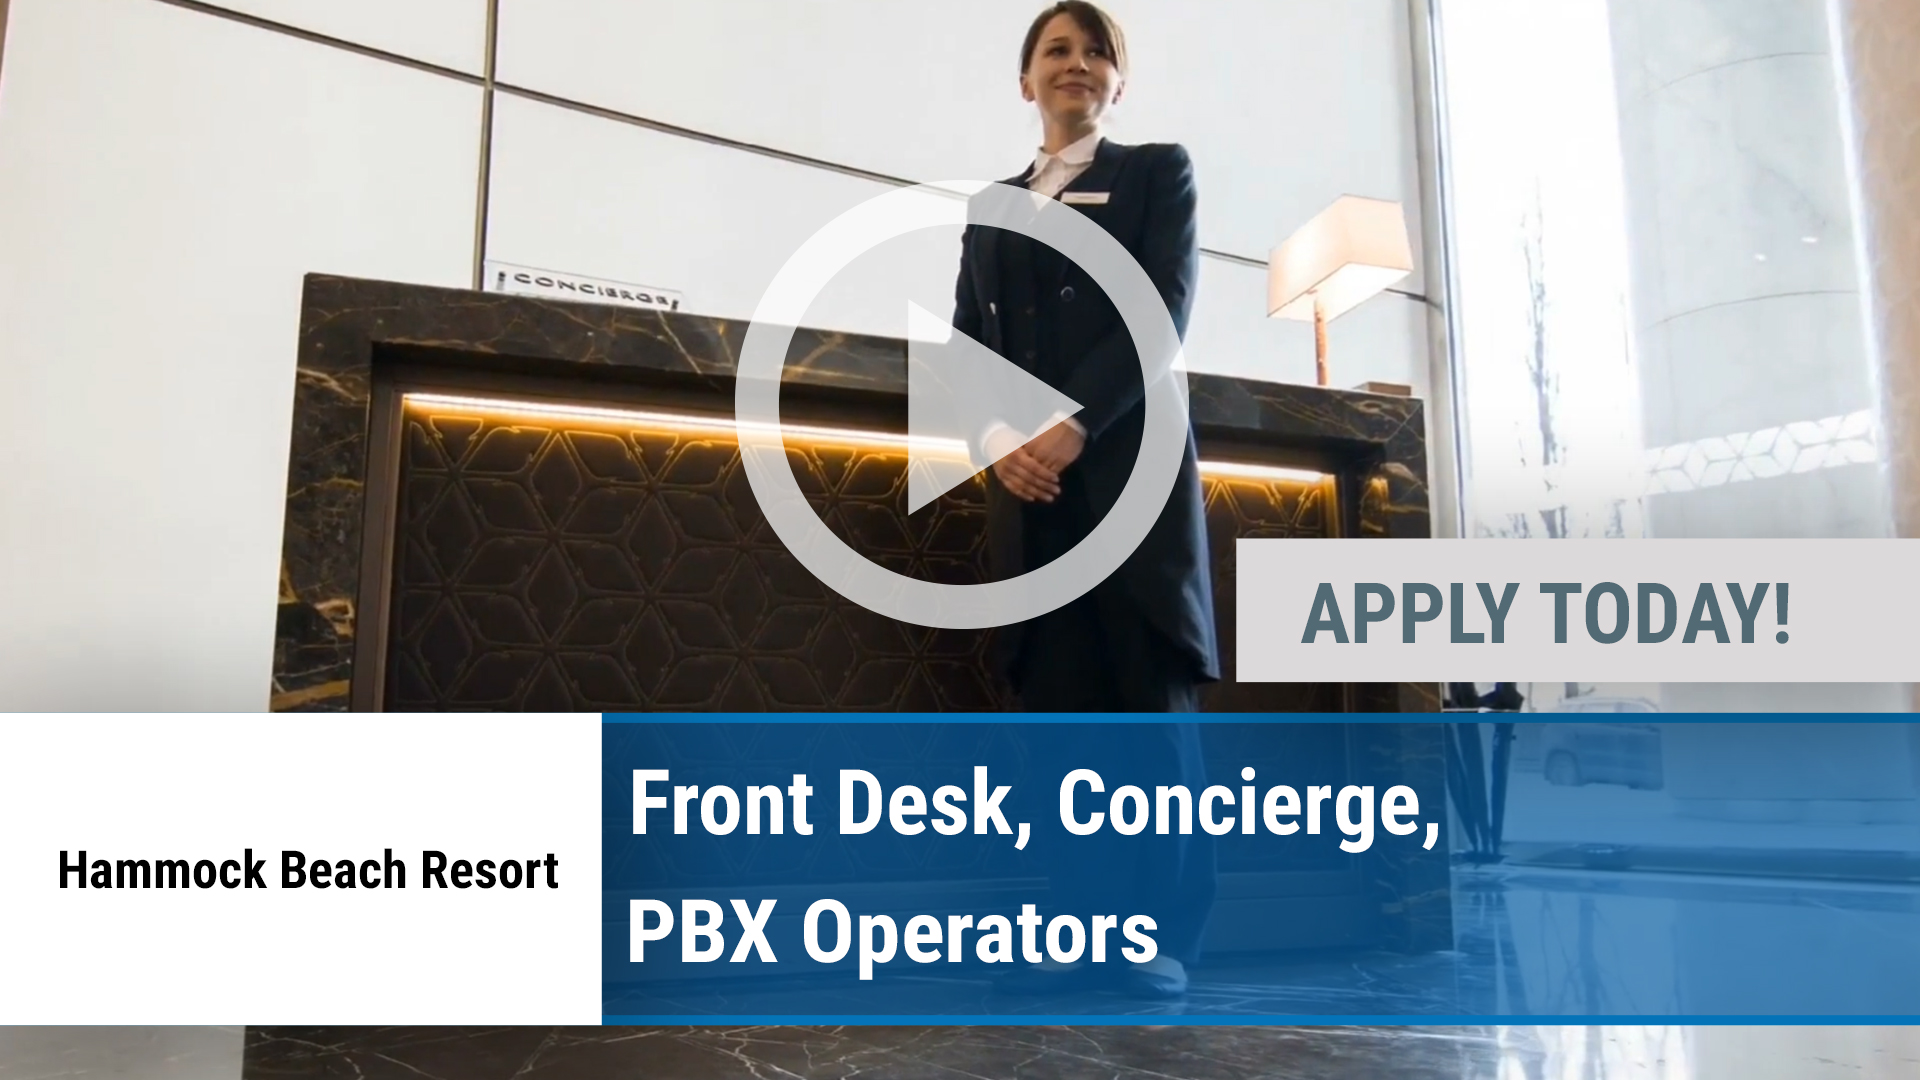 Watch our careers video for available job opening Front Desk, Concierge, PBX Operators in Jacksonville, FL